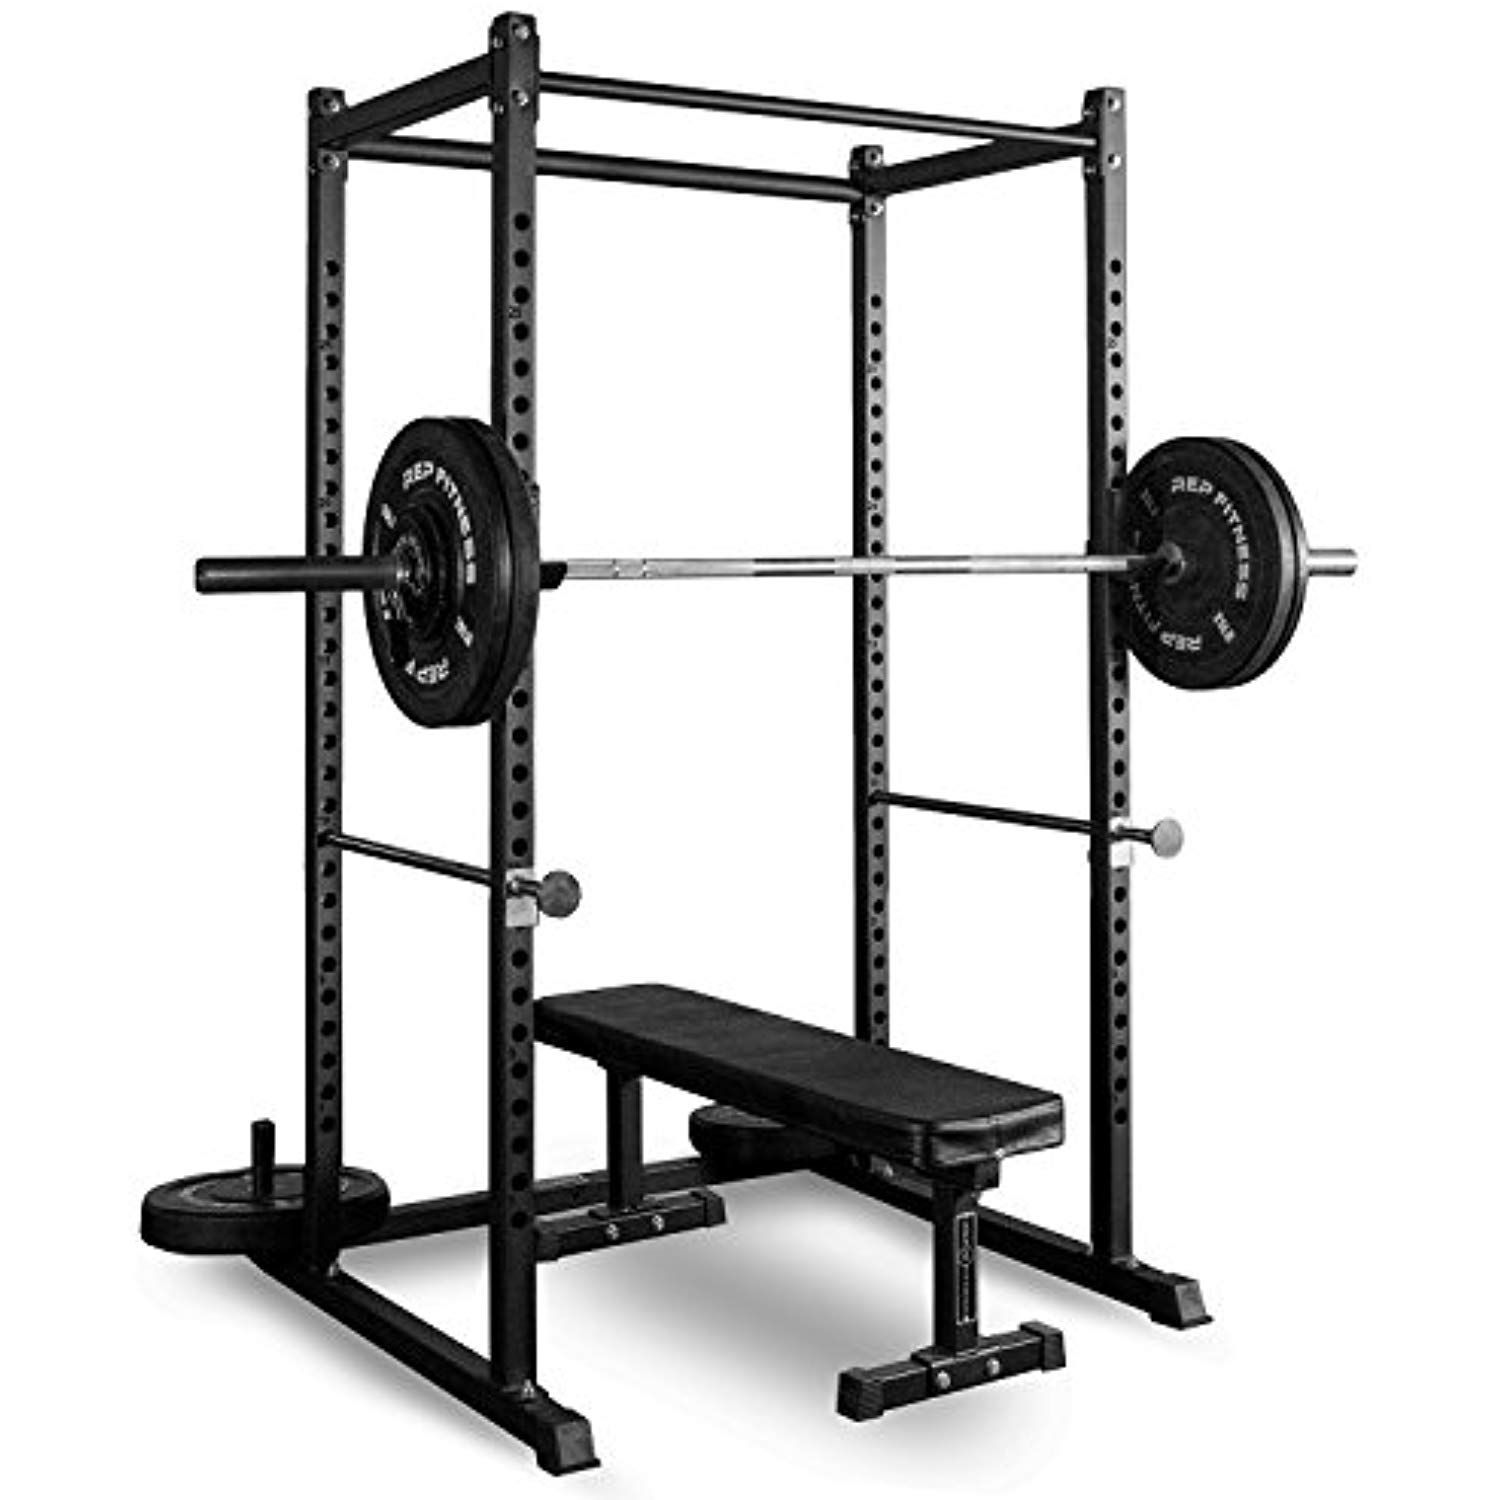 Rep HG3 Home Gym Package, with Rep PR1000 Power Rack